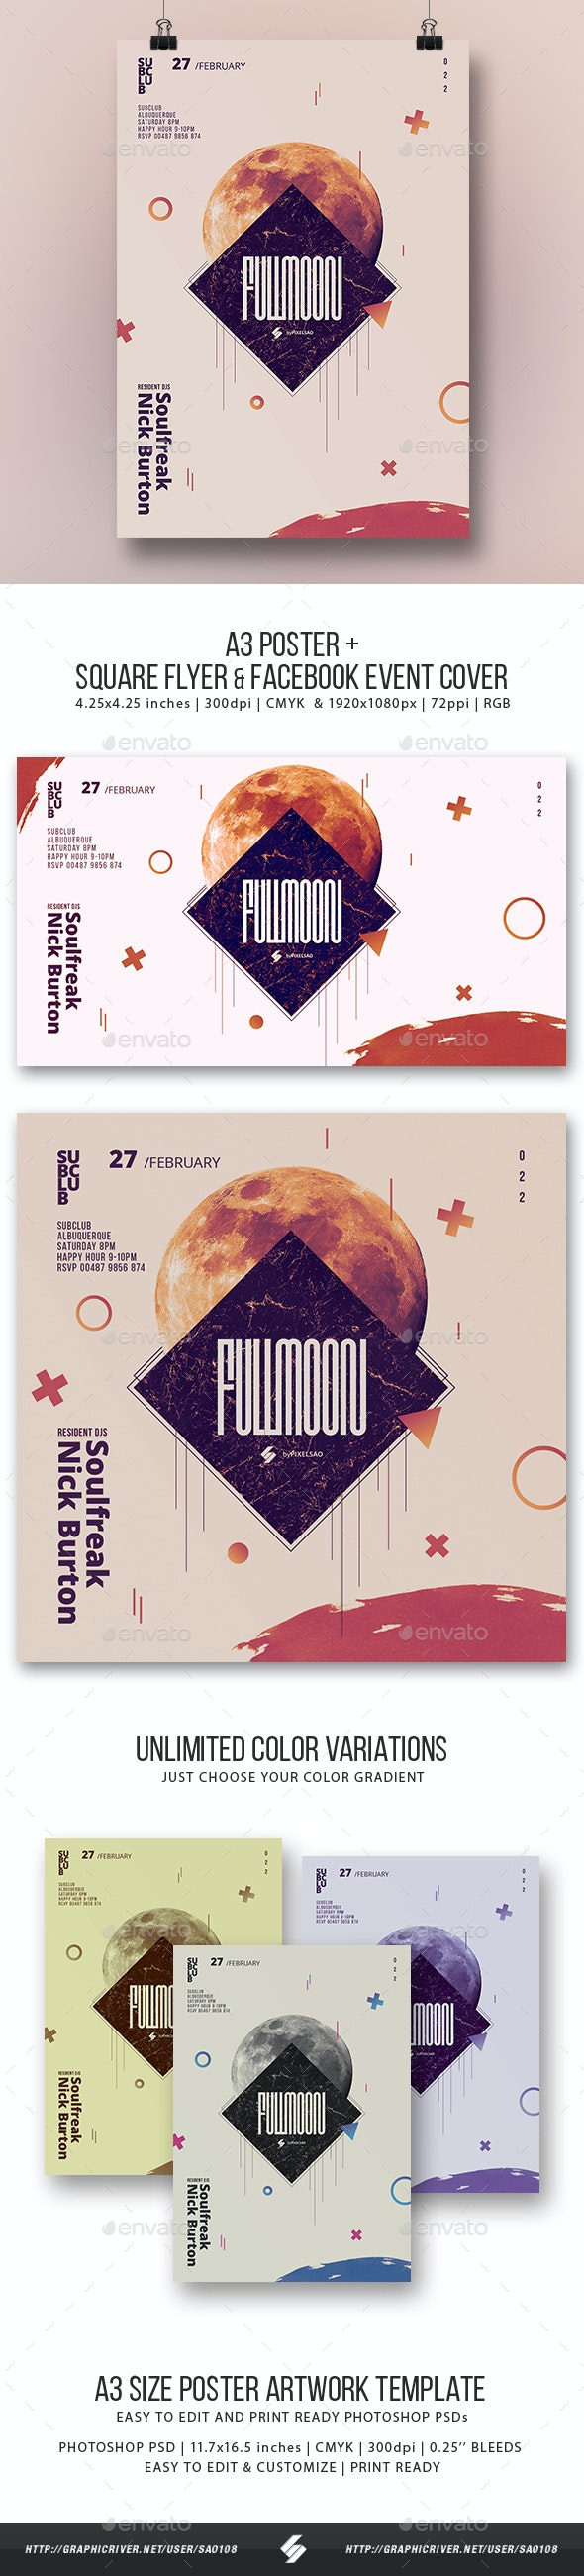 Full Moon - Alternative Music Event Poster / Flyer Artwork Template - Clubs & Parties Events